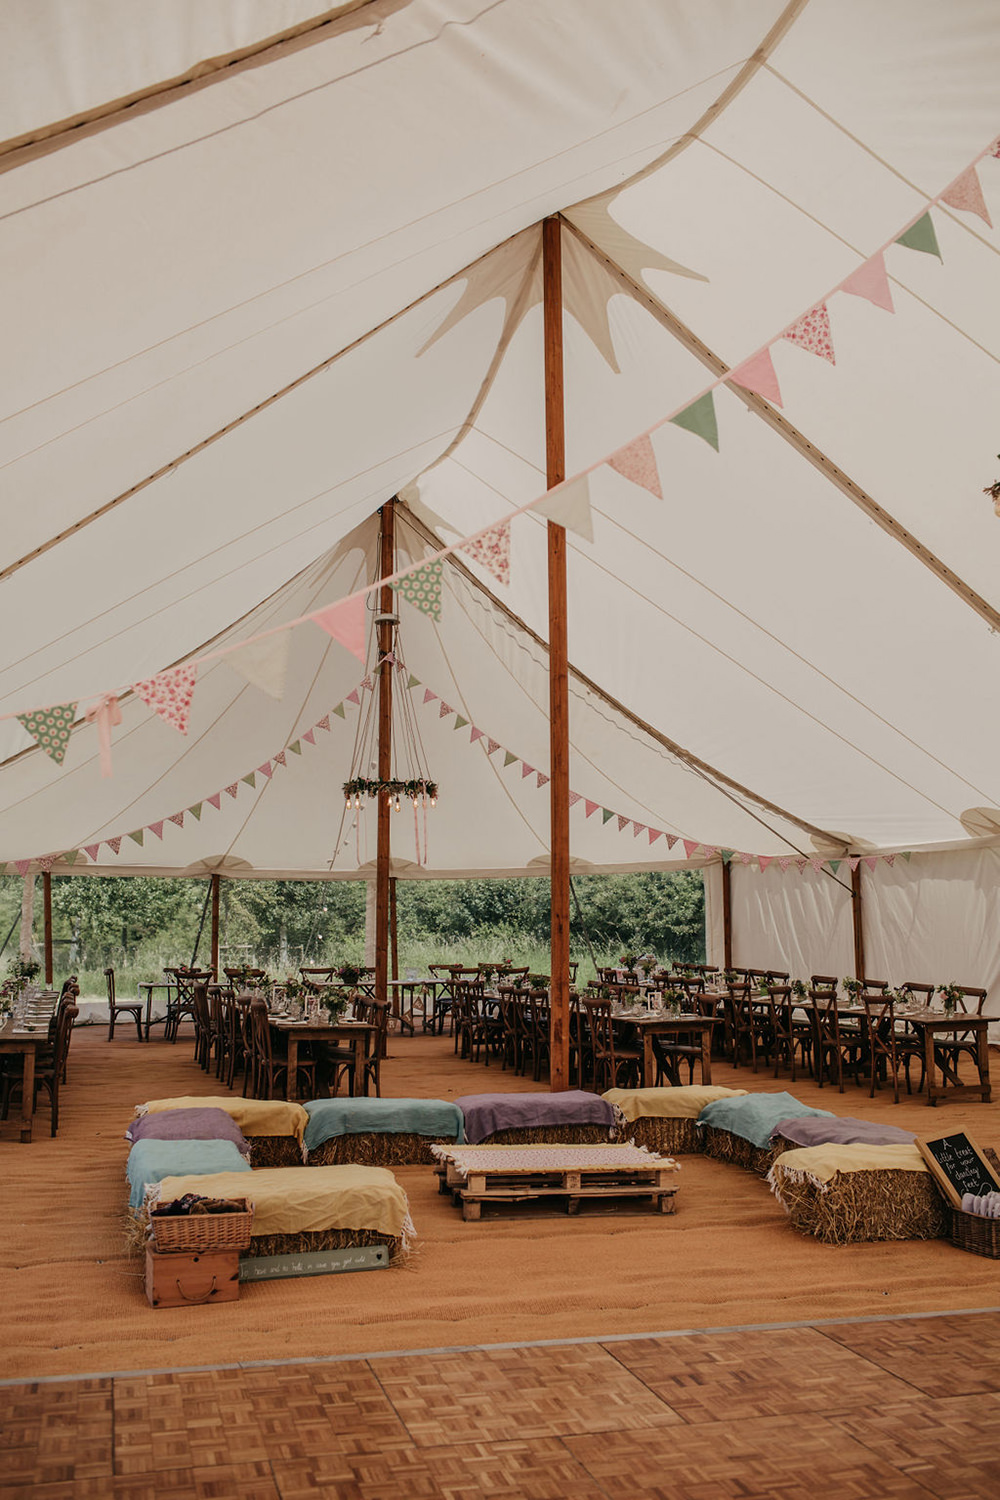 Pole Tent Bunting Hay Bale Seating Celeste Marquee Wedding Sarah Longworth Photography